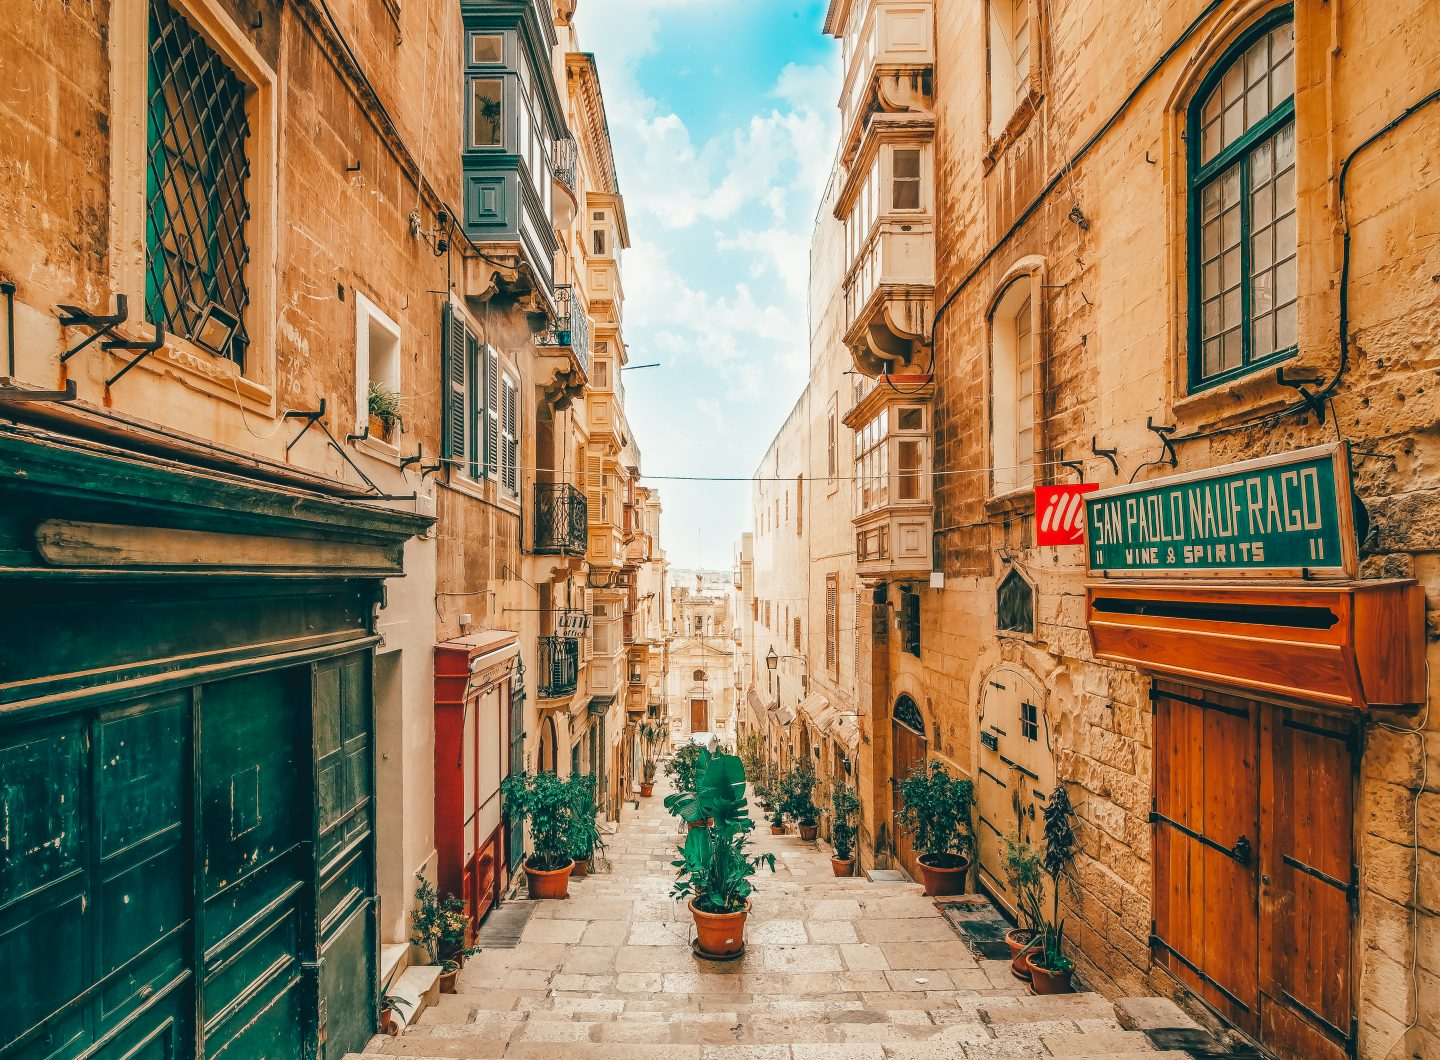 One the World Heritage streets in Valletta